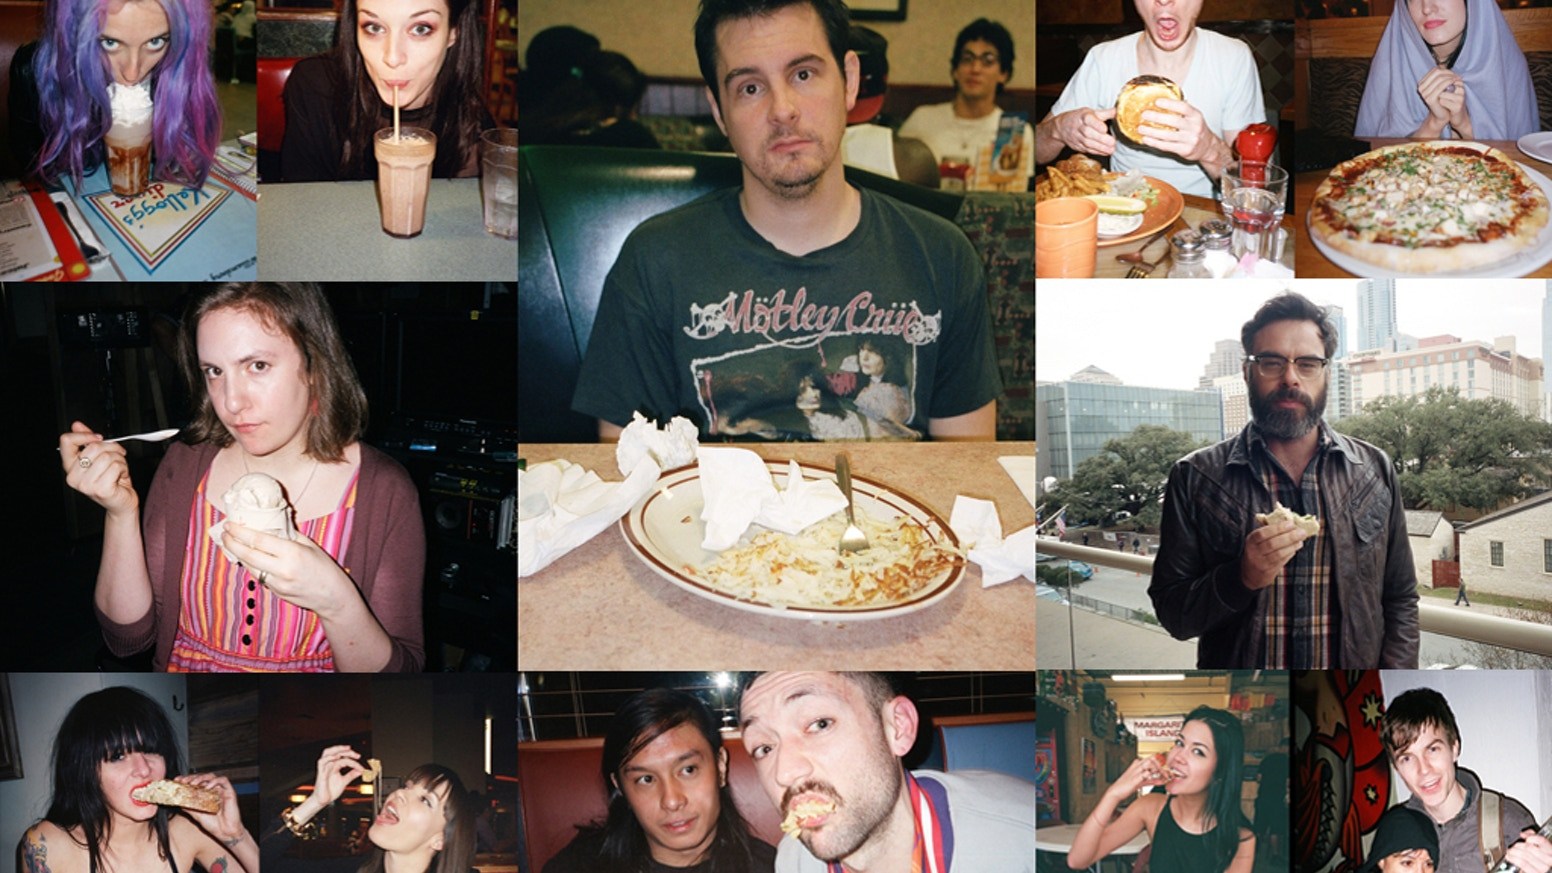 For the better part of a decade I have photographed nearly every person I have eaten with and soon they will be in a book.